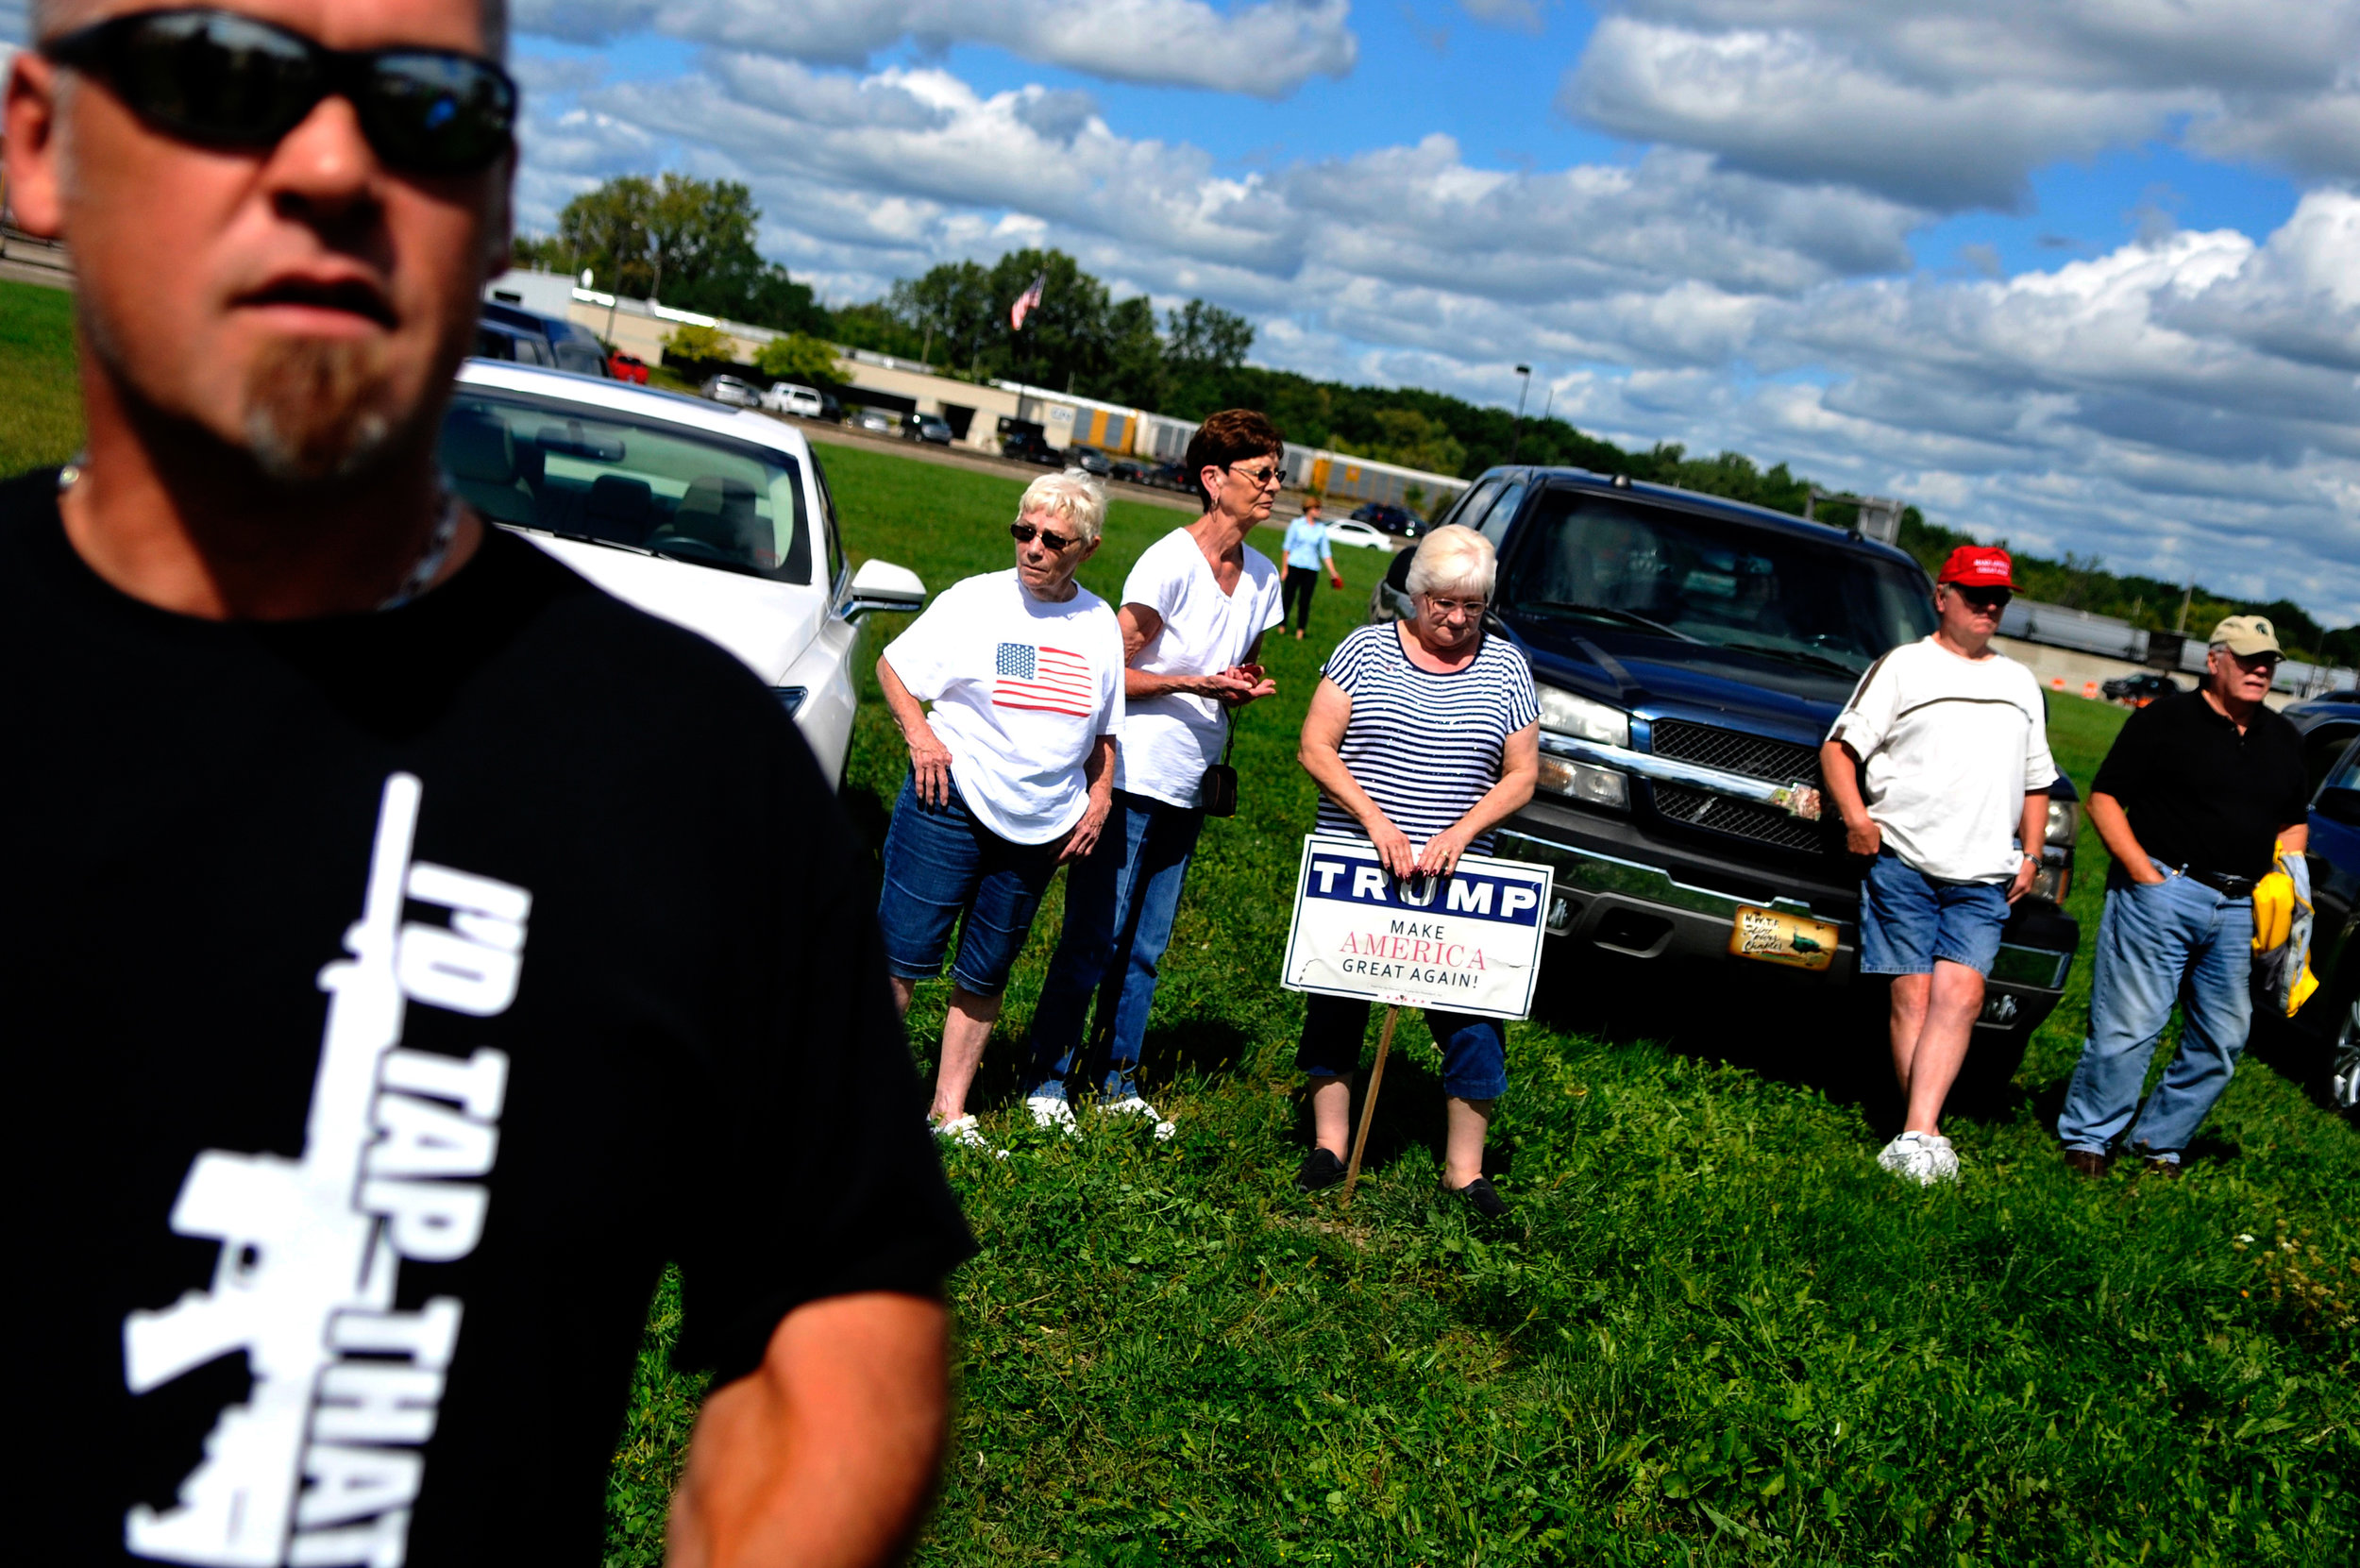 Dozens of people gather outside Bishop International Airport for the arrival of Republican presidential candidate Donald Trump on Wednesday, Sept. 14, 2016 in Flint.